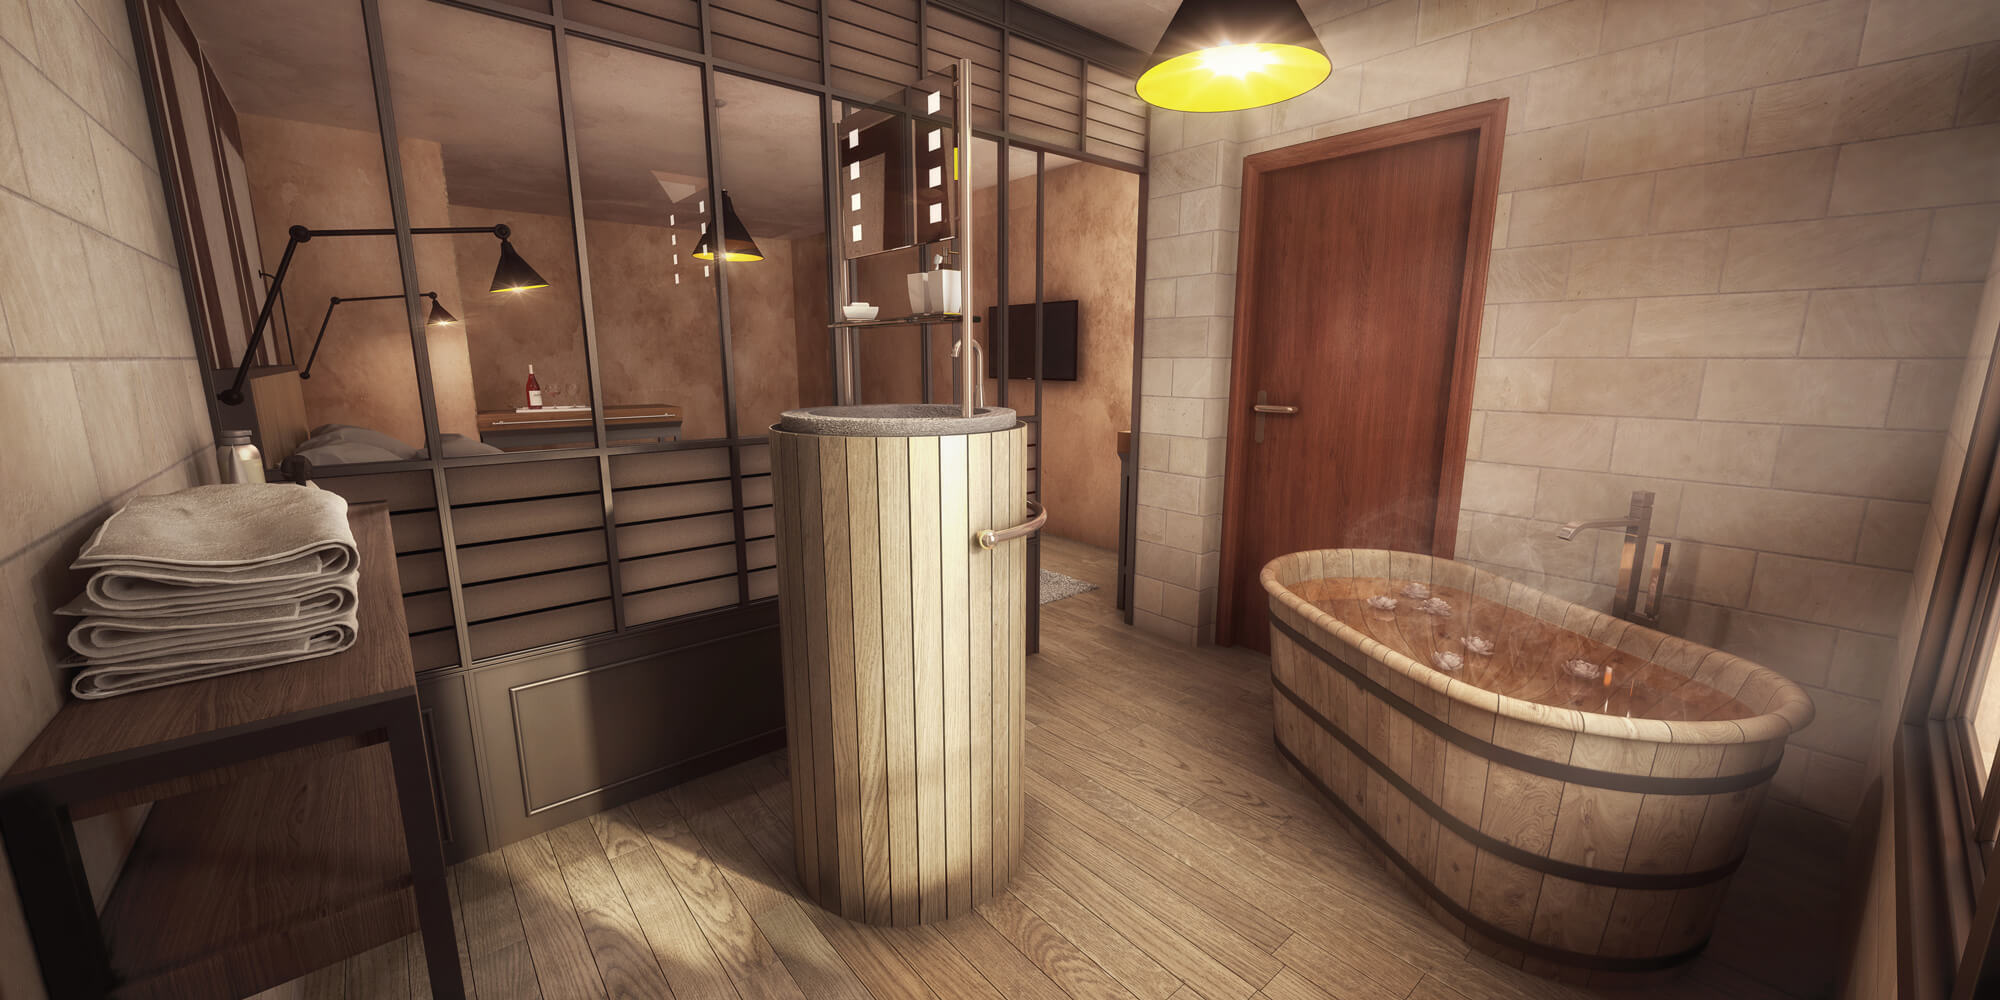 Decoration Interieur Salle De Bain Awesome Awesome